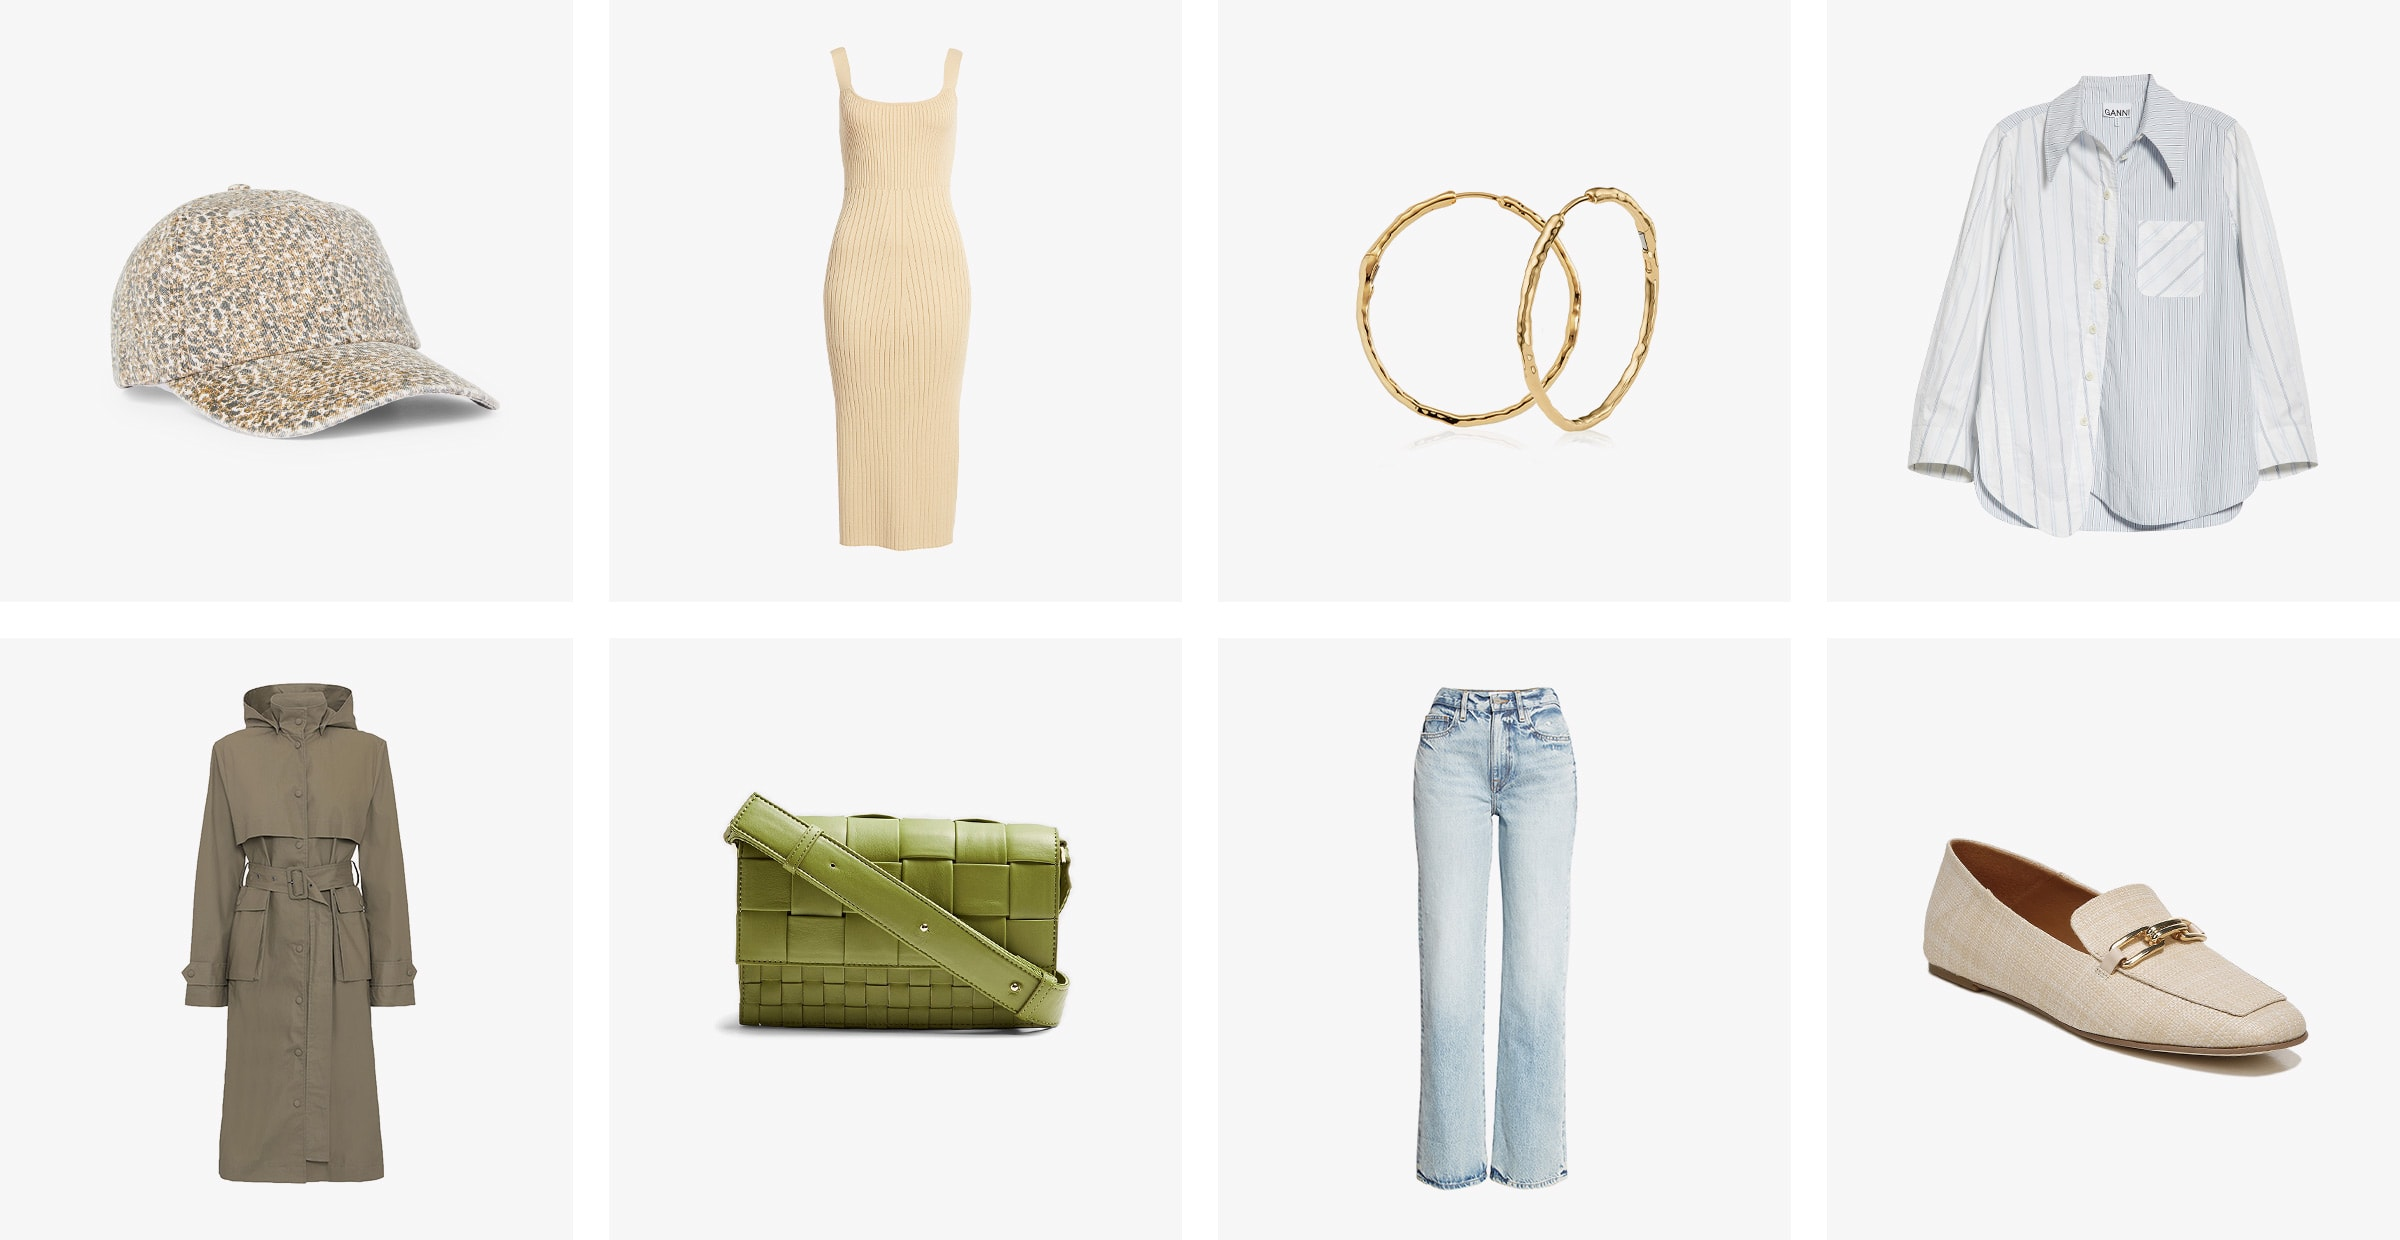 A women's cap, tank dress, earrings, shirt, trench coat, handbag, jeans and loafers, similar to items in a Trunk.